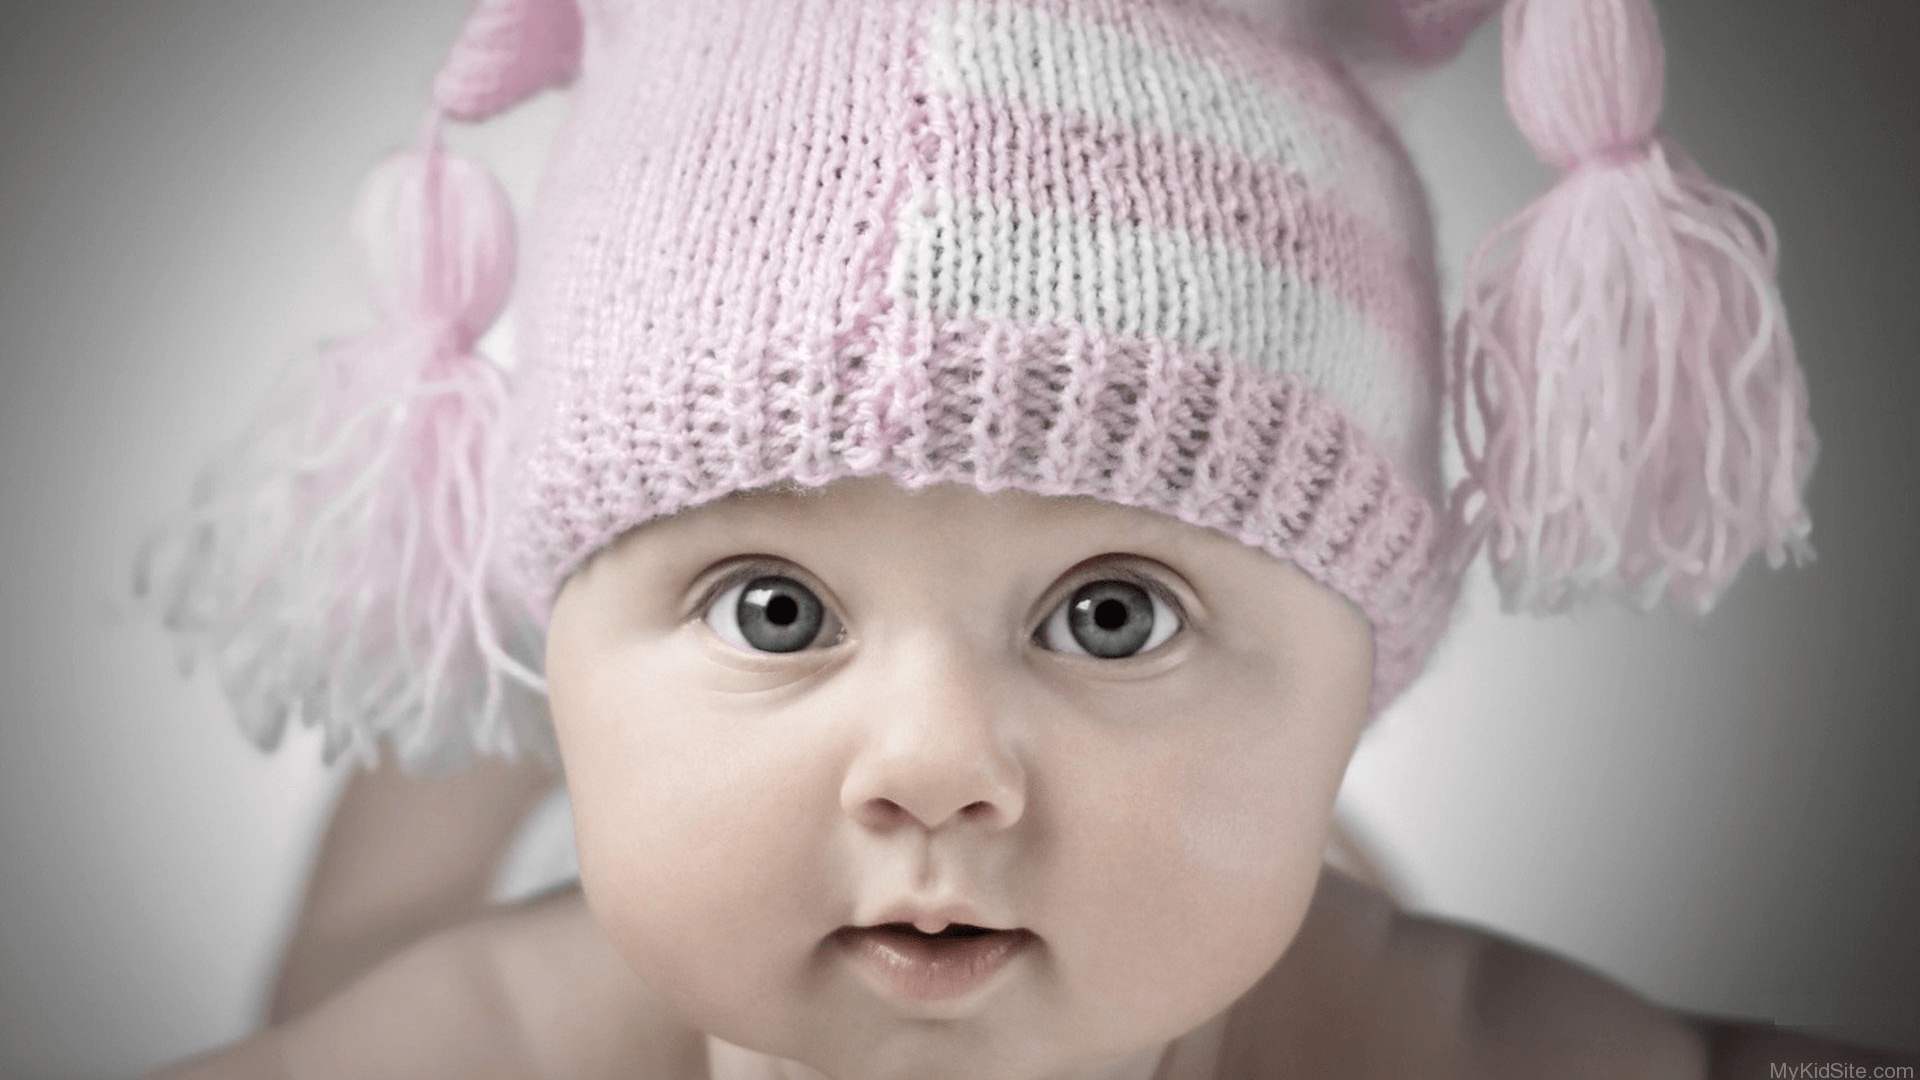 20 Charming & Innocent Babies Wallpapers